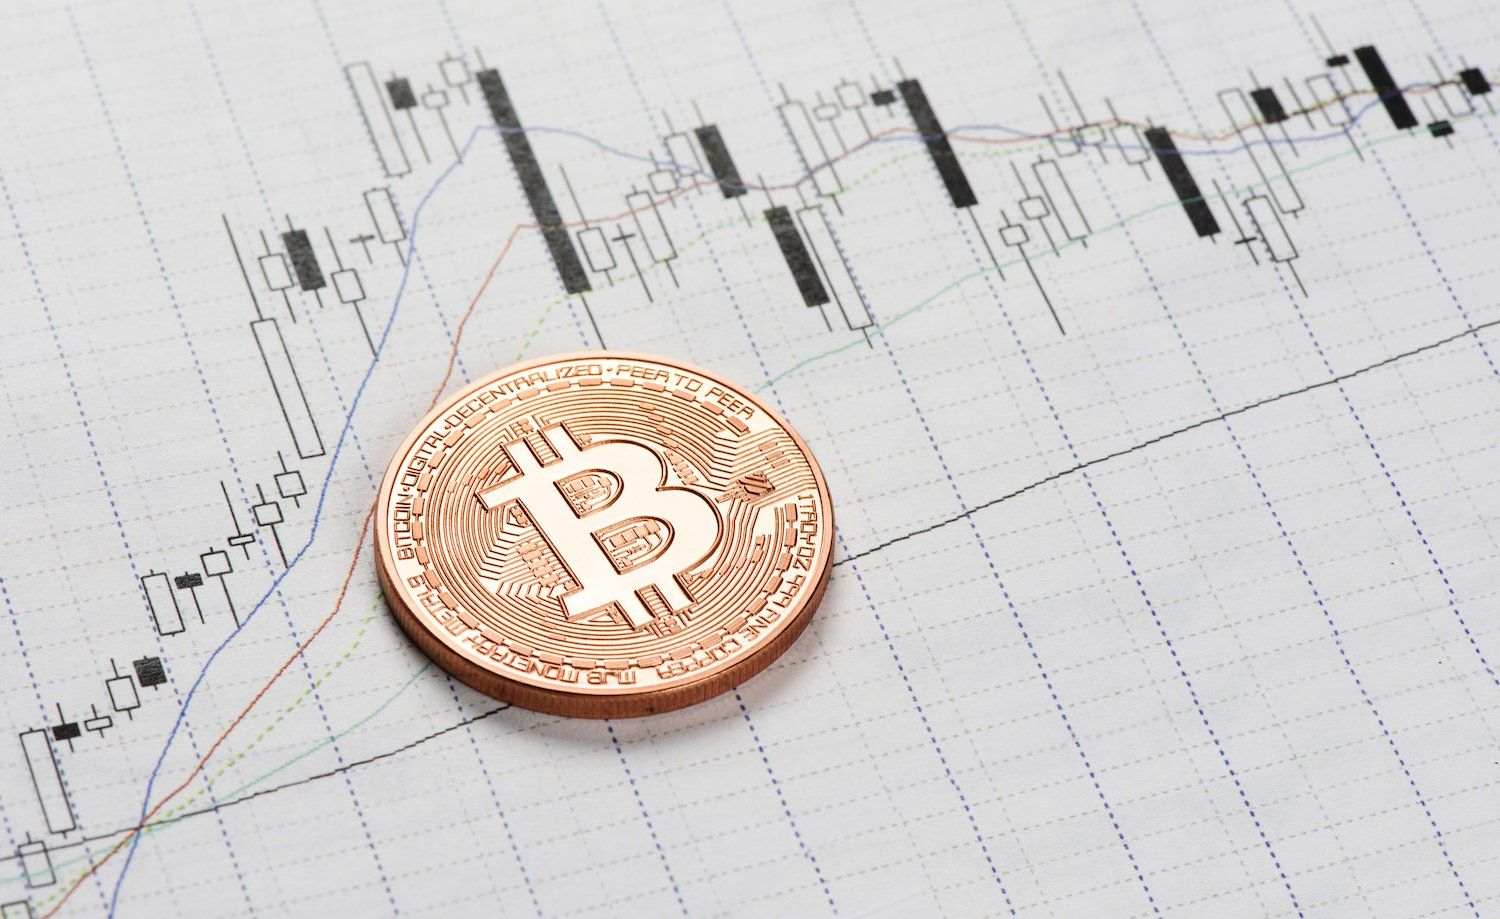 Bears in Control, But Bitcoin May Defend $8K in the Short-Term